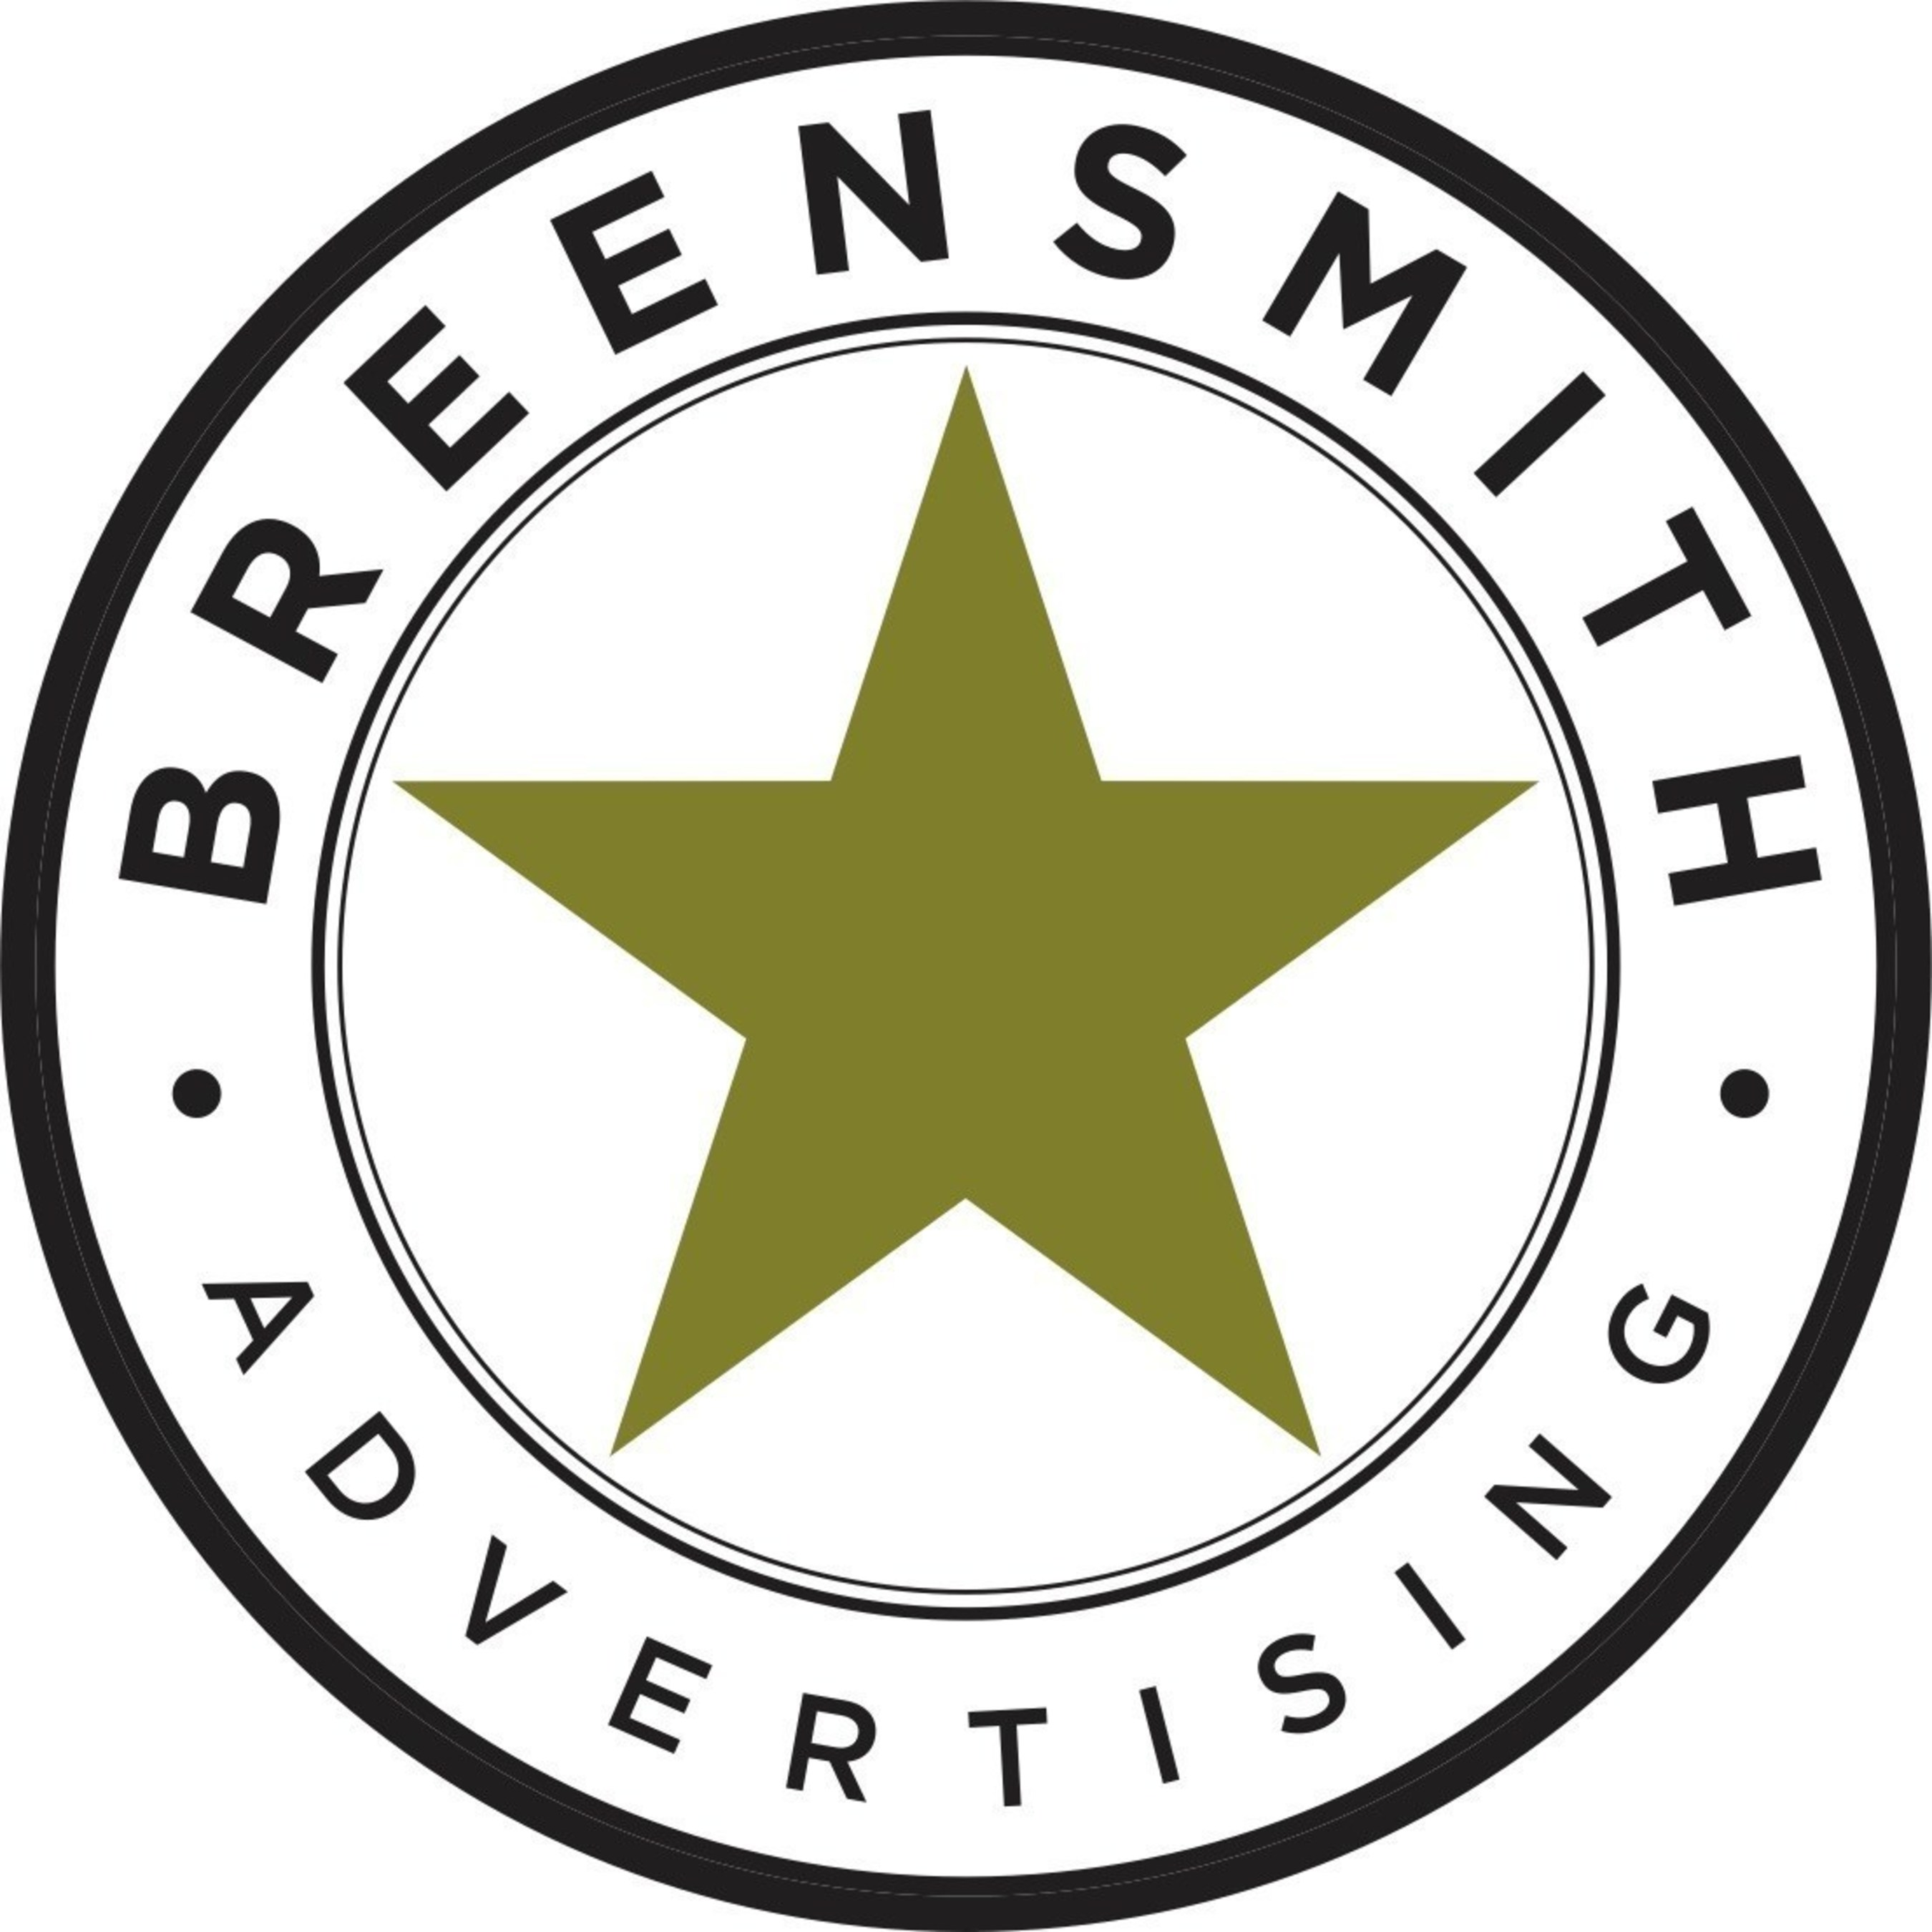 breensmith Passes the Best Small Agency Torch, But Wins Big at the 2016 Shorty Awards